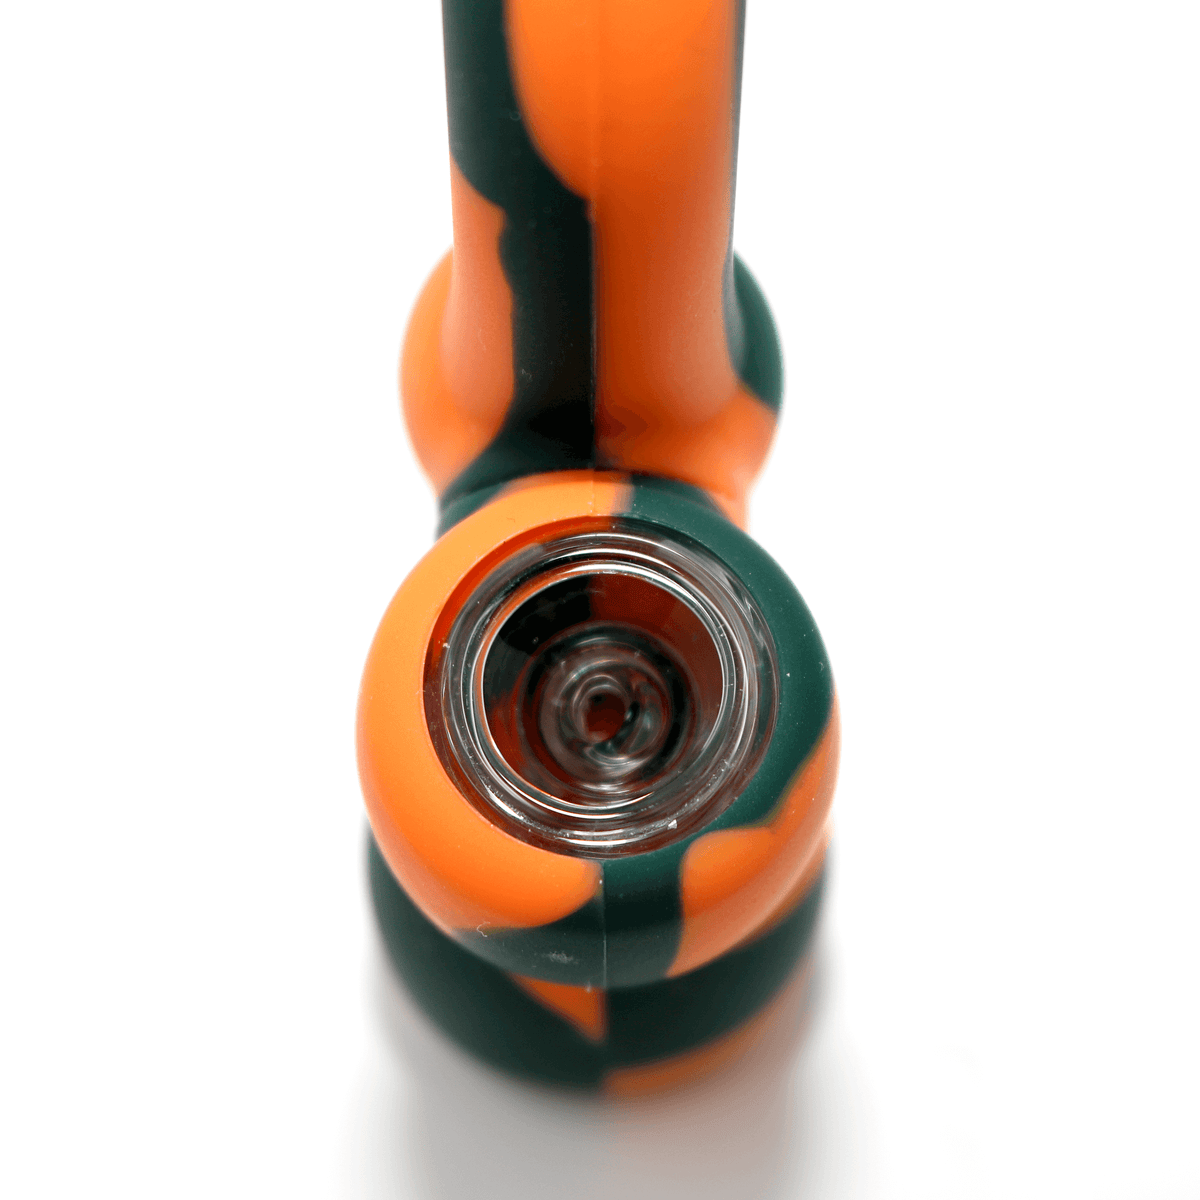 Dab Rig - Mini Silicone Bubbler - Orange-Black